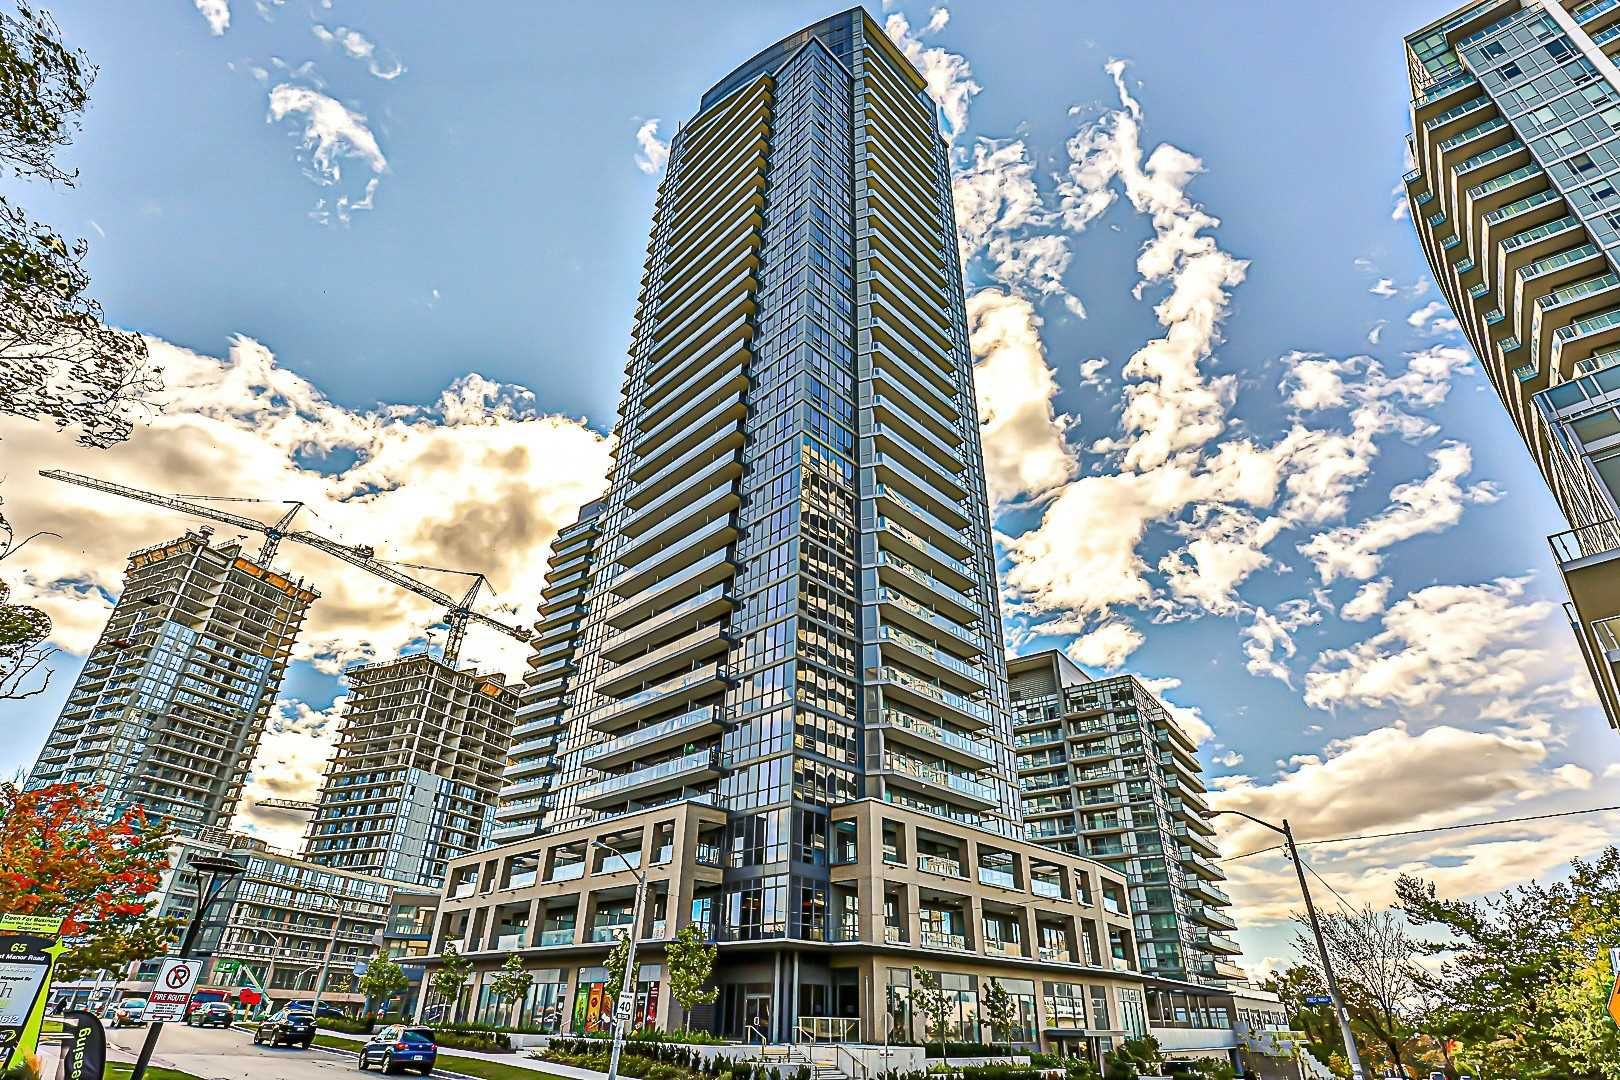 56 Forest Manor Rd, unit 2401 for rent in Toronto - image #1